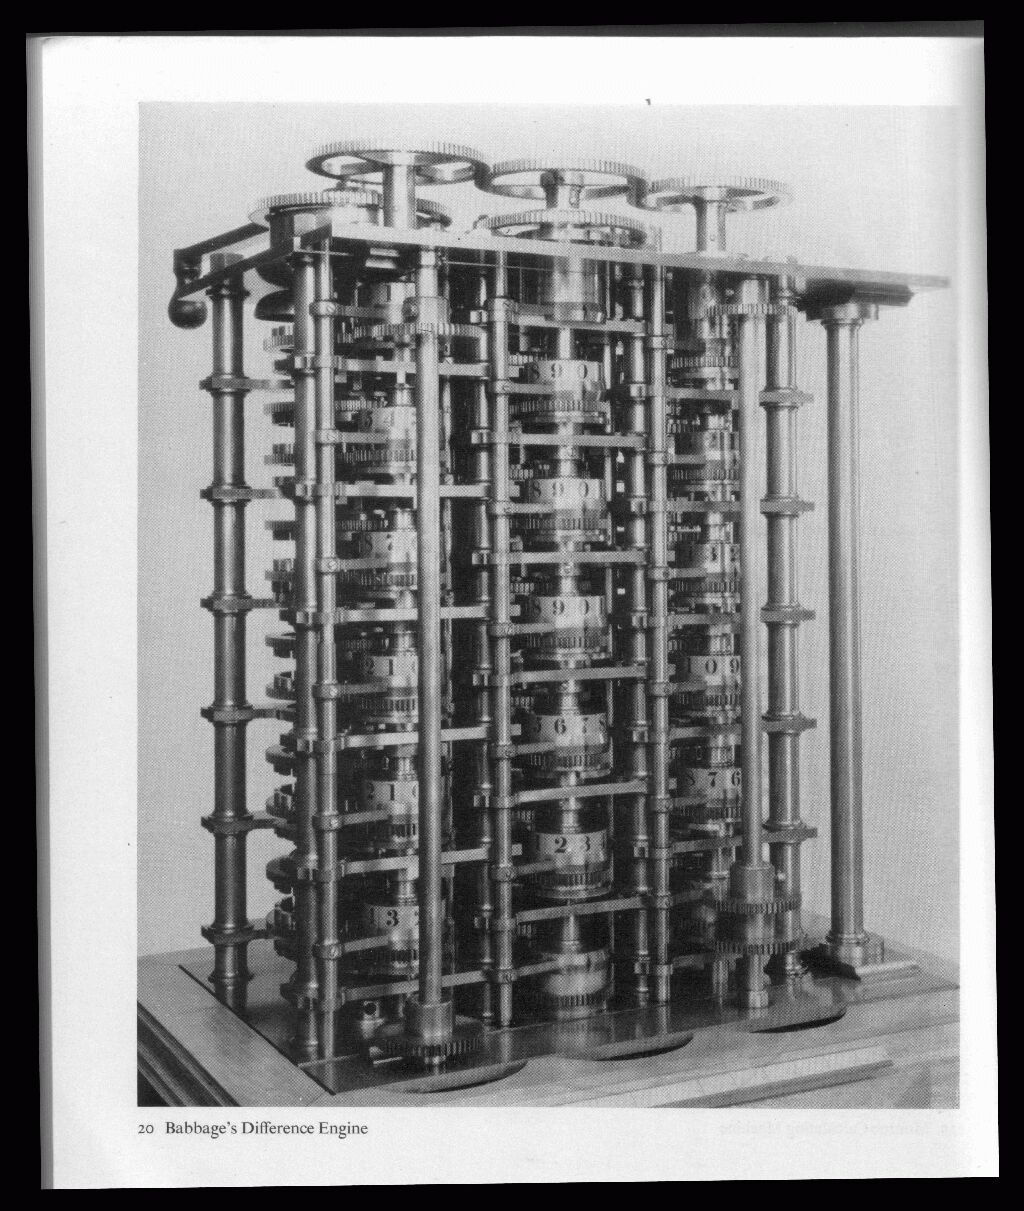 Charles Babbage's Analytical Engine -Courtesy of https://babbage.bravehost.com